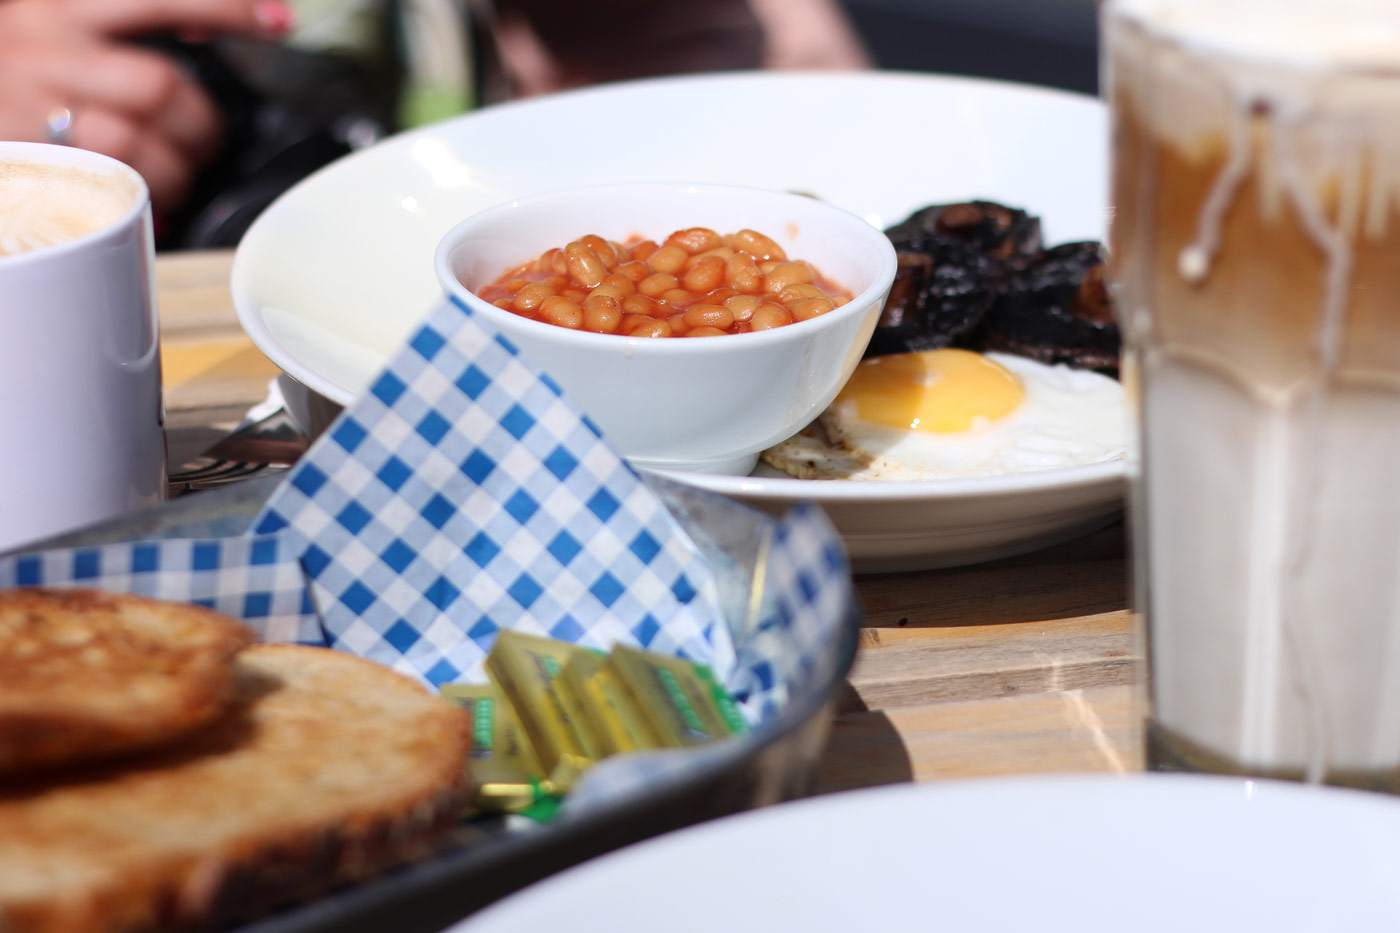 long-play-cafe-newcastle-NE1-newcastle-quayside-review-brunch-breakfast-where-to-eat-2